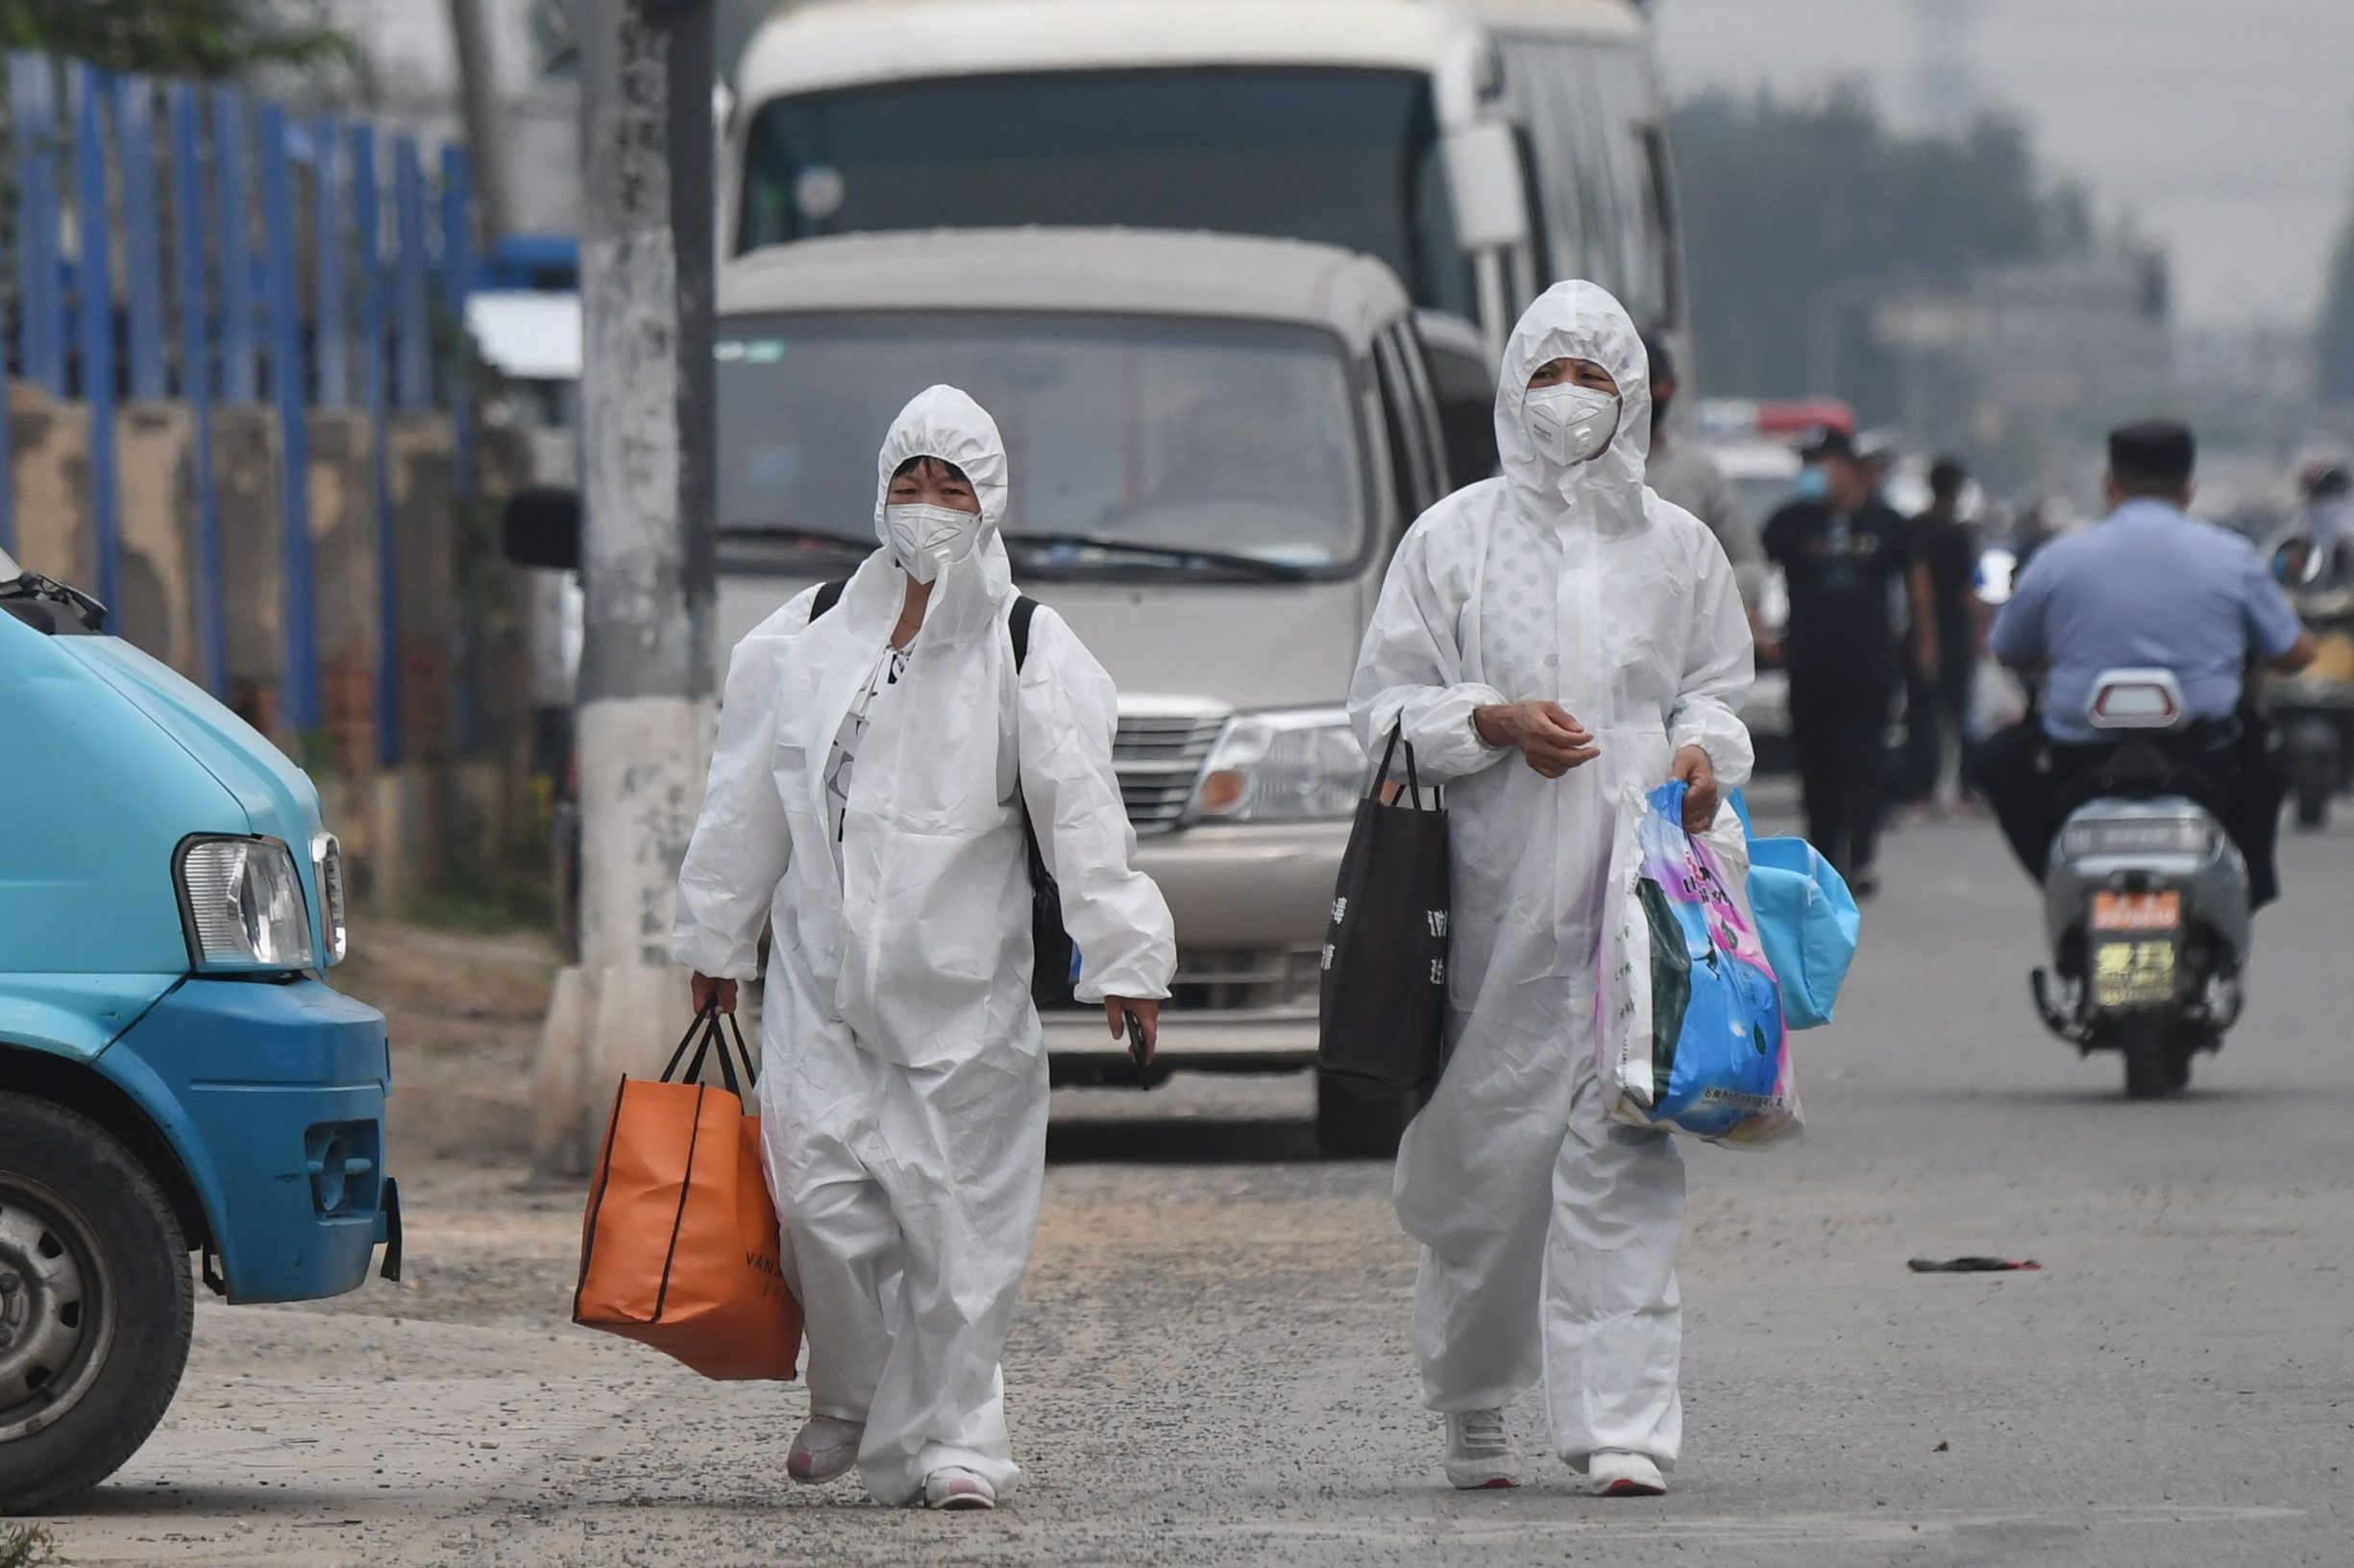 TOPSHOT - Two women wear protective suits as they walk on a street near the closed Xinfadi market in Beijing on June 13, 2020. - Eleven residential estates in south Beijing have been locked down due to a fresh cluster of coronavirus cases linked to the Xinfadi meat market, officials said on June 13. (Photo by GREG BAKER / AFP)